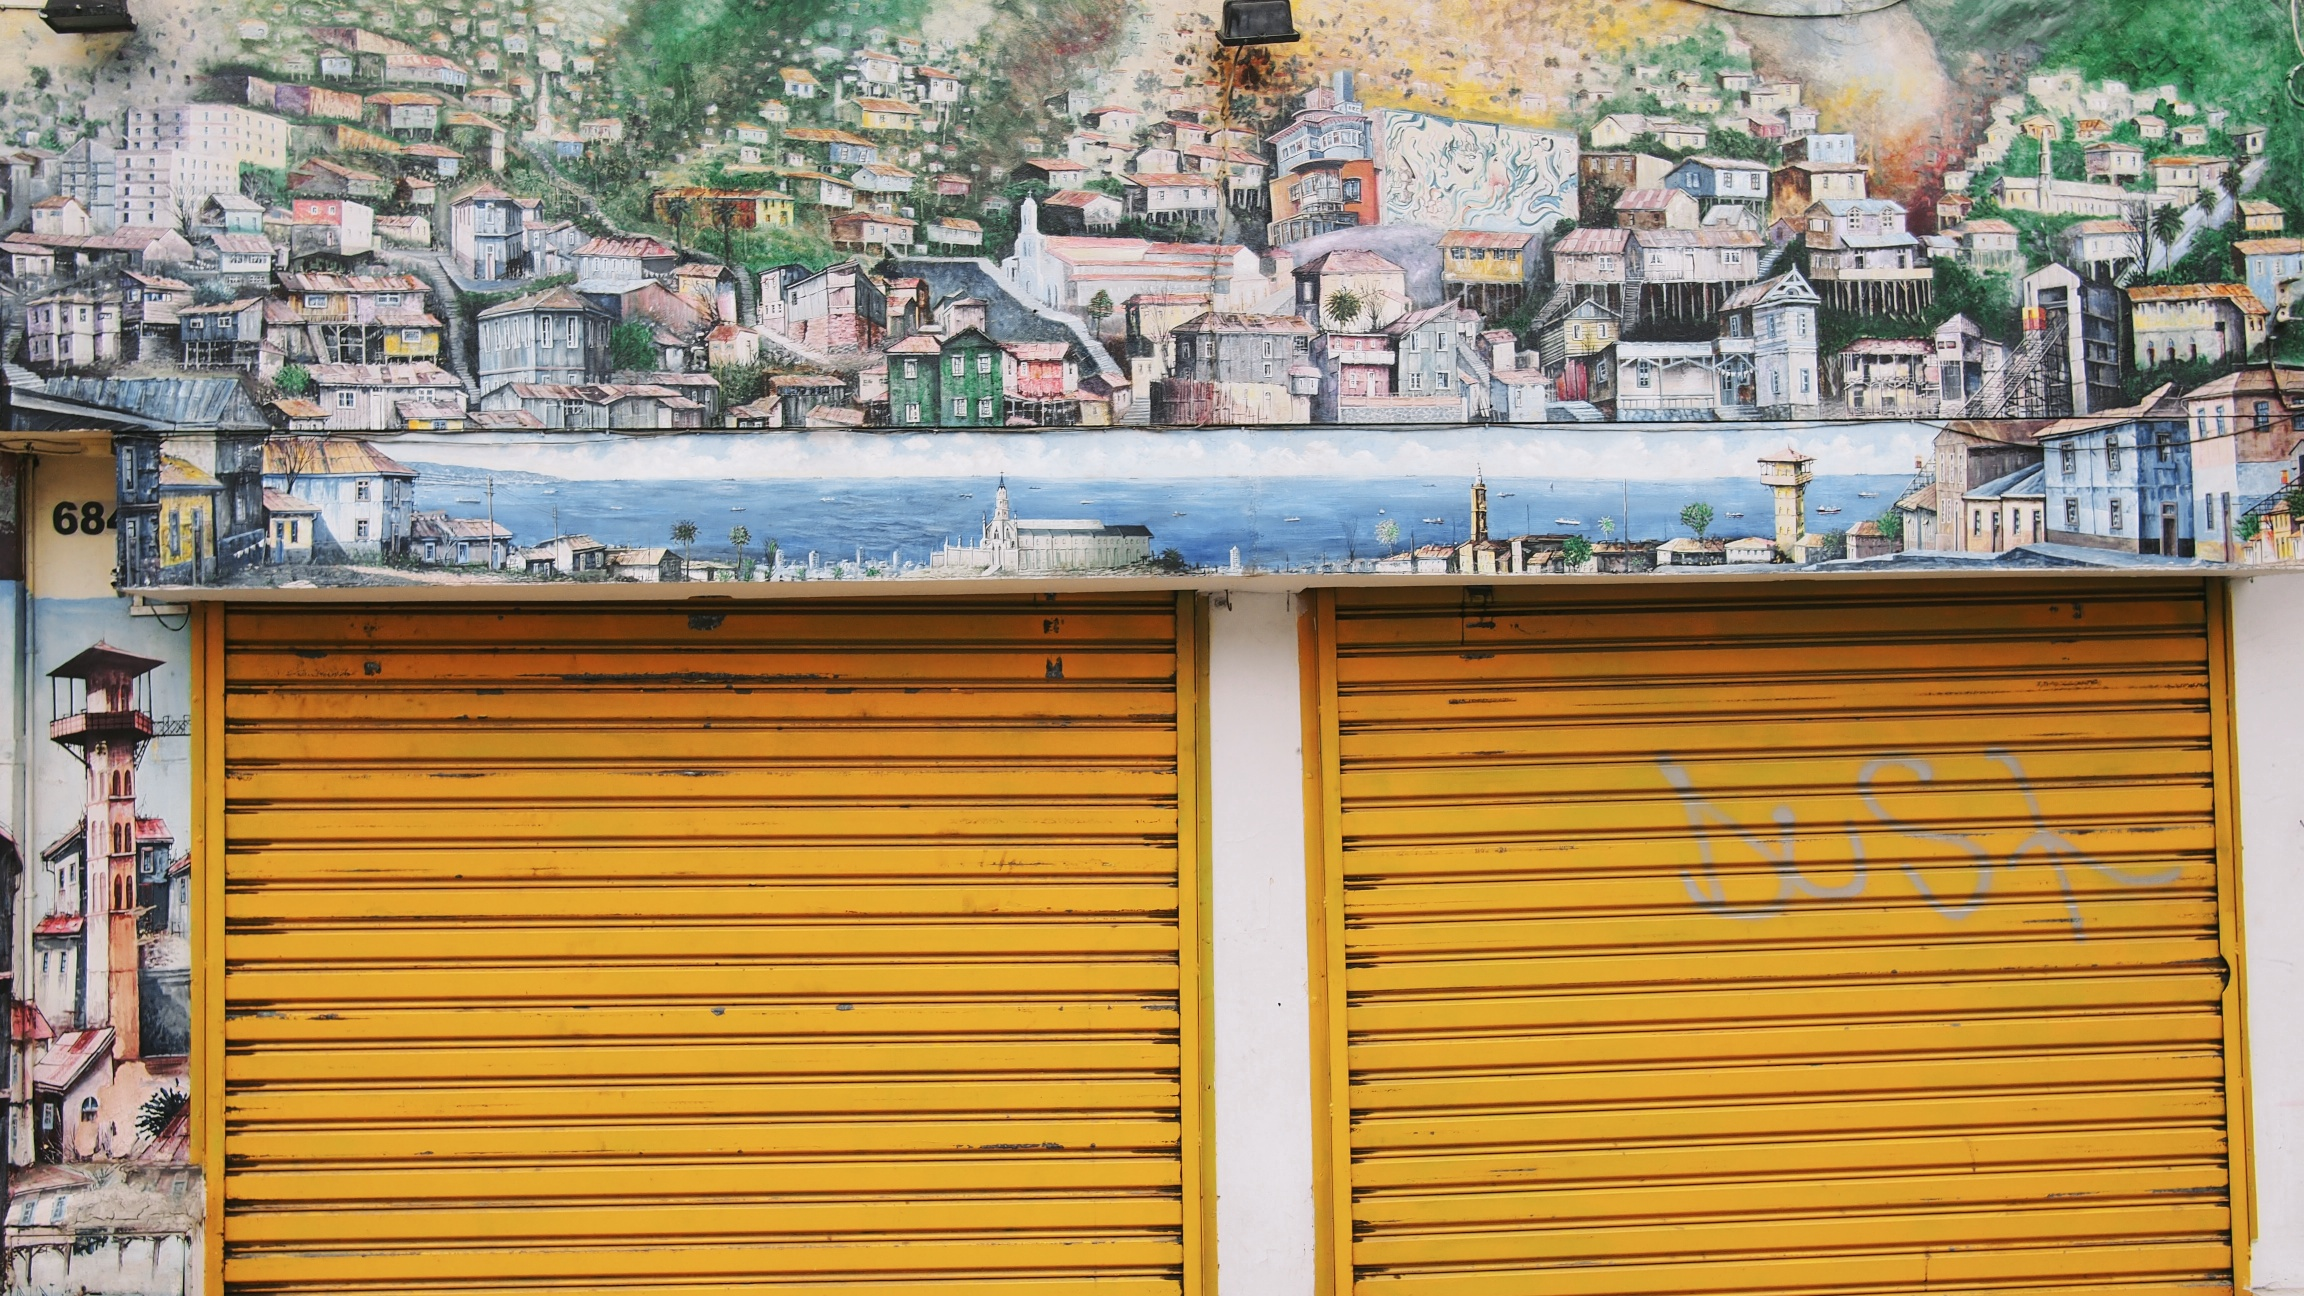 Above and below, some of the interesting artwork adorning the streets of Valparaíso